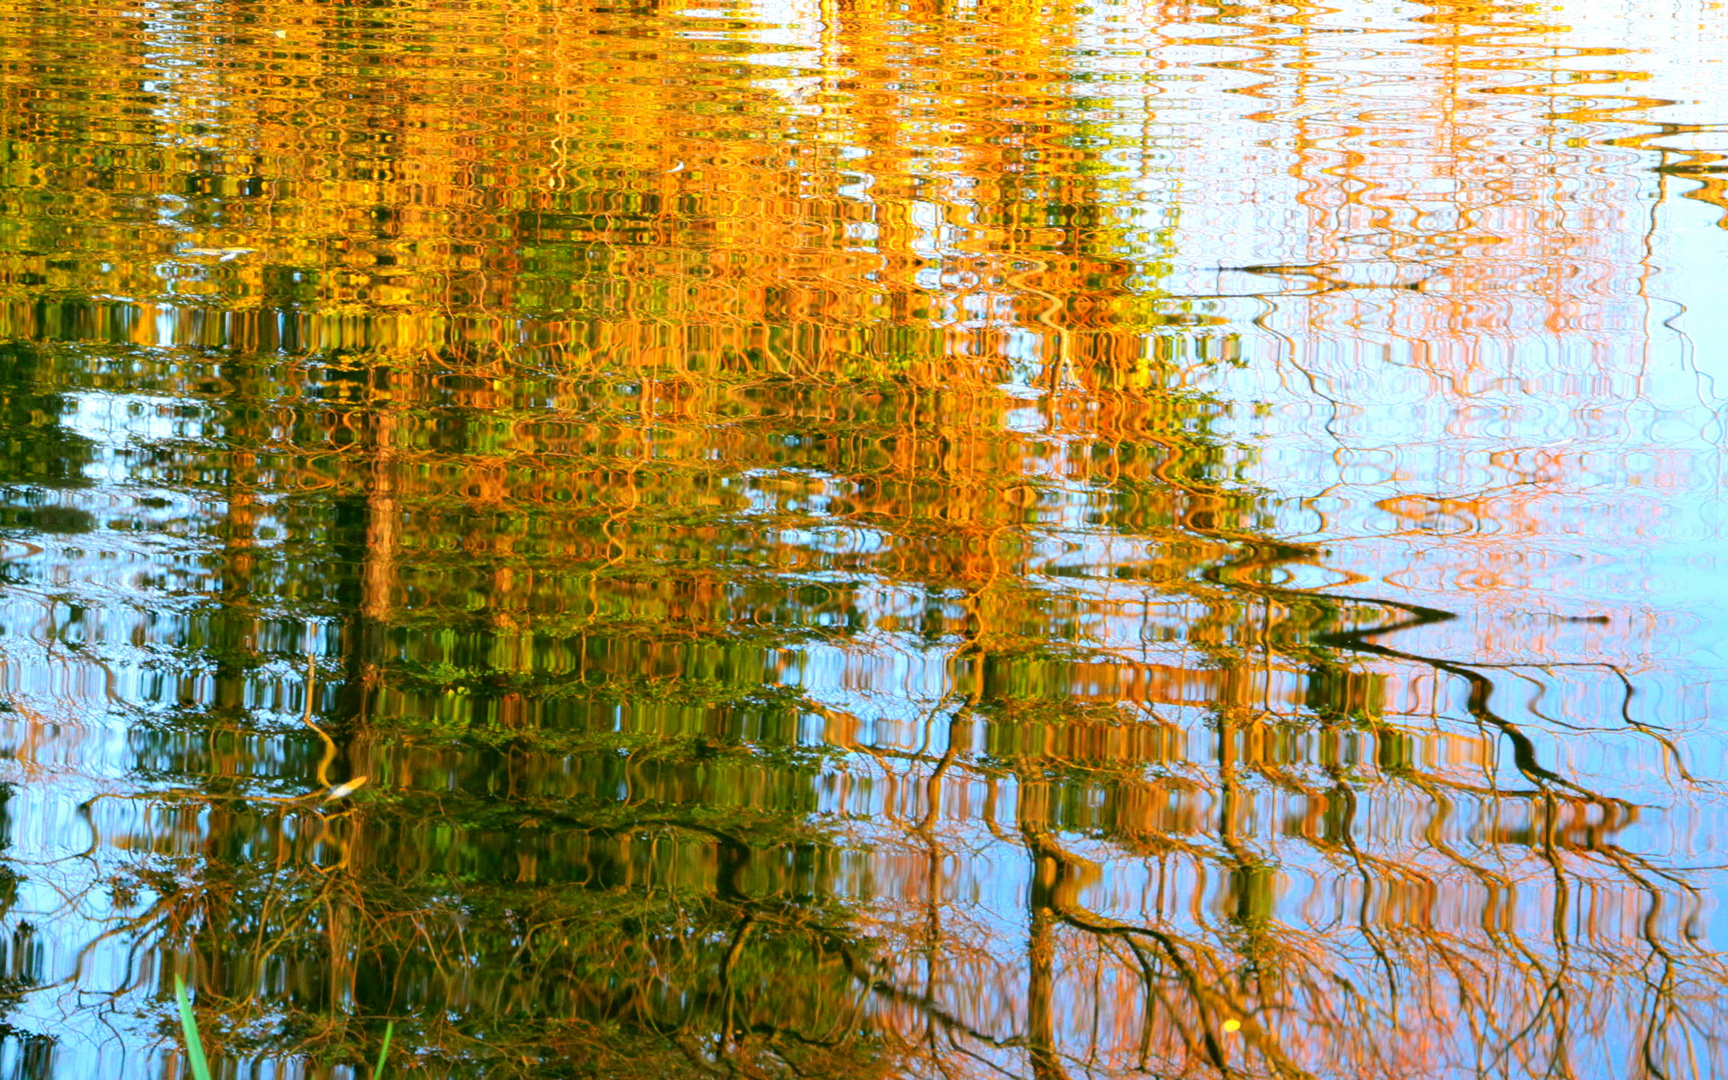 Painted by Reflection